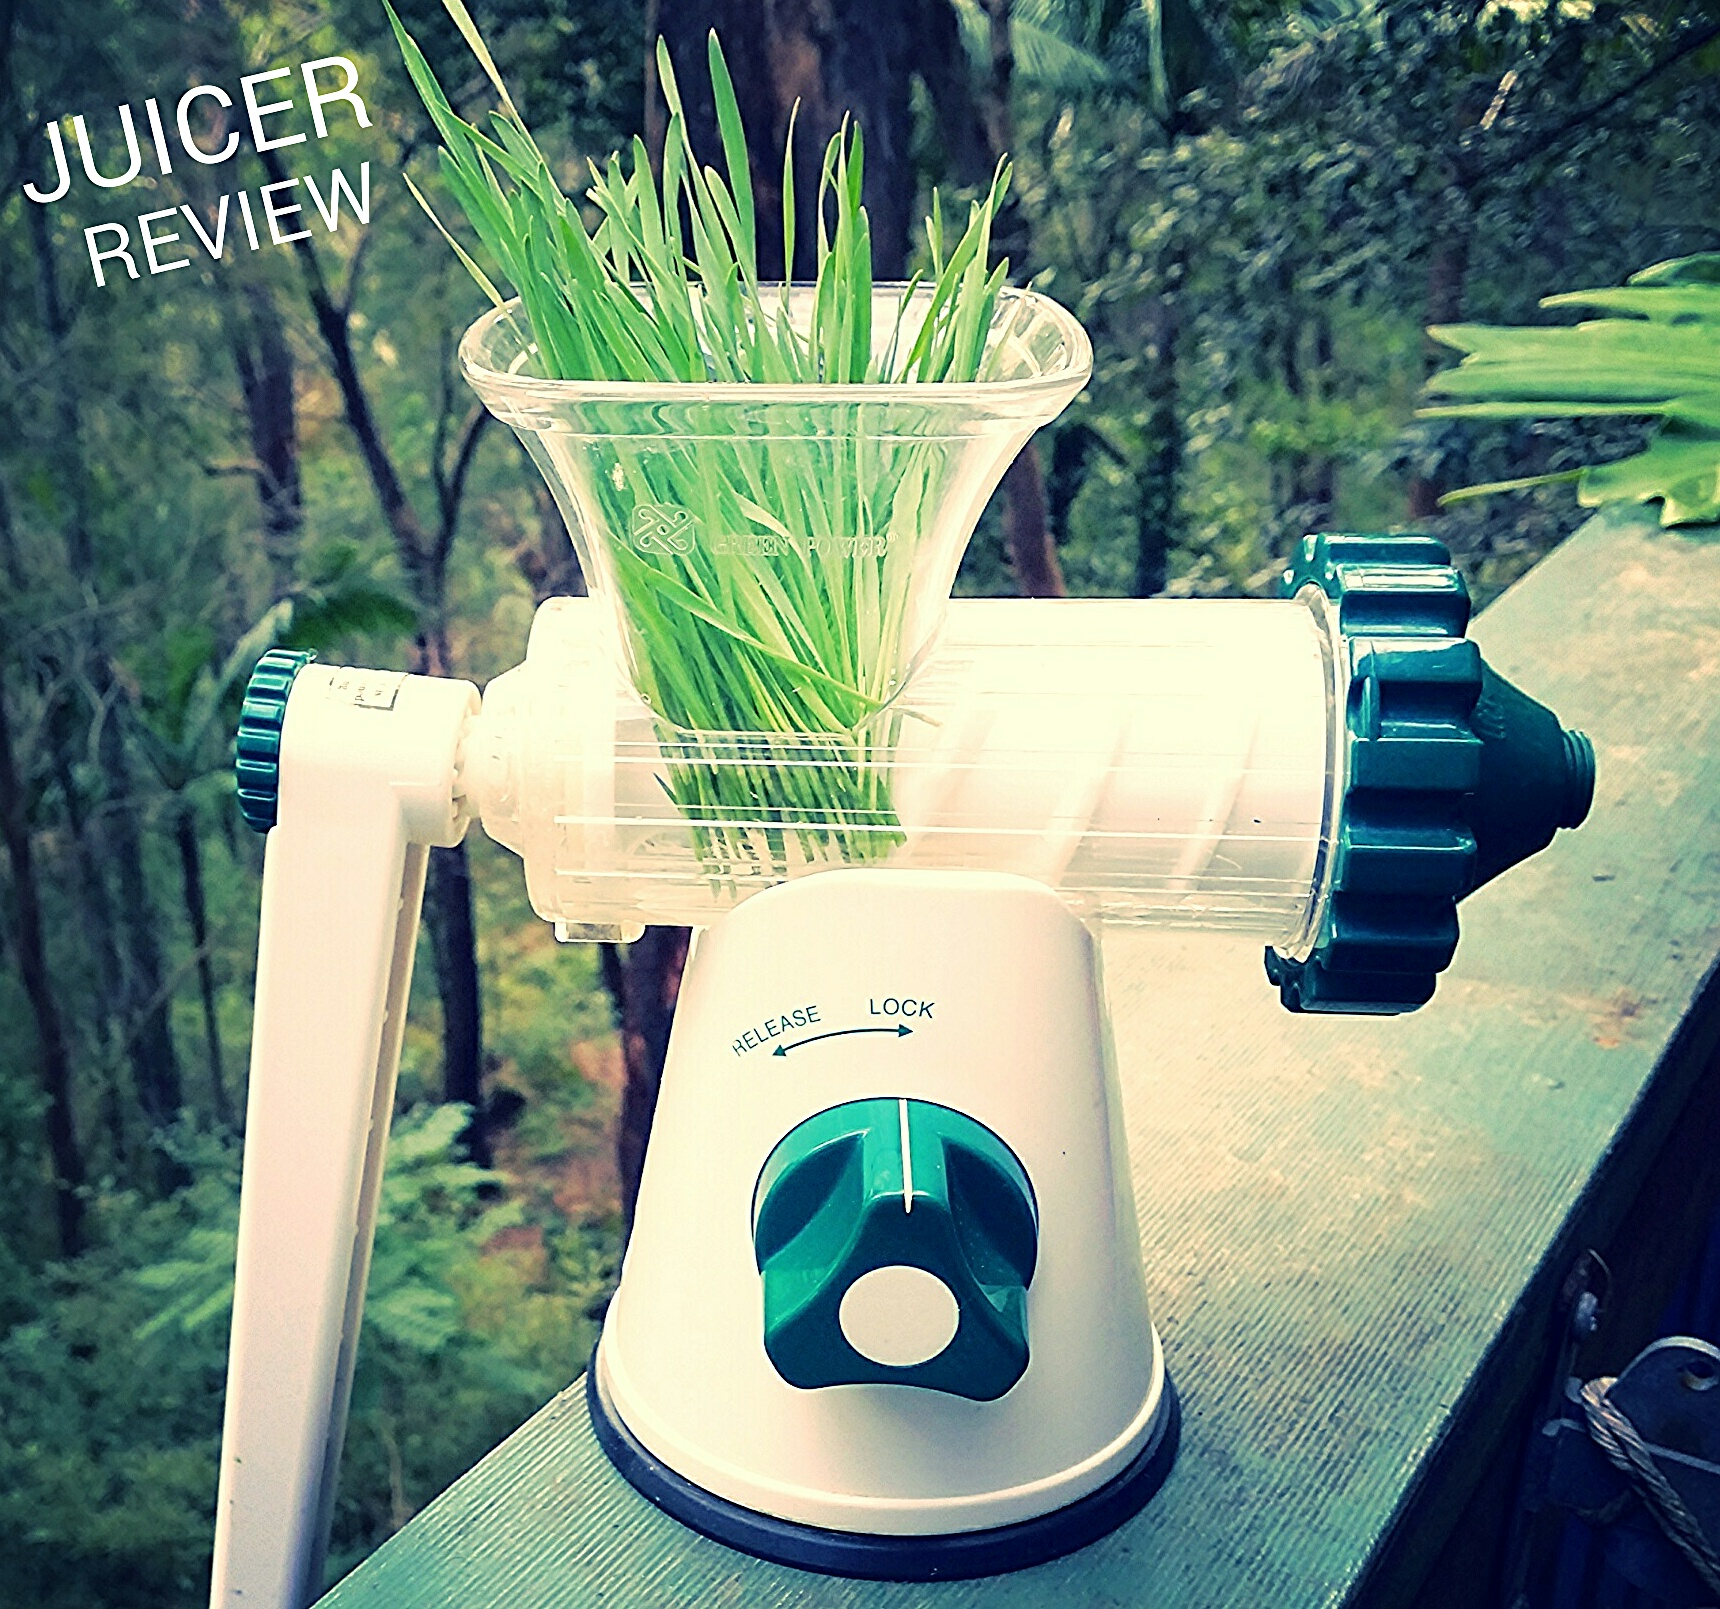 Wheatgrass Juicer. 9 Best Wheatgrass Juicers. Omega J8006 Masticating Juicer. Best Wheatgrass ...